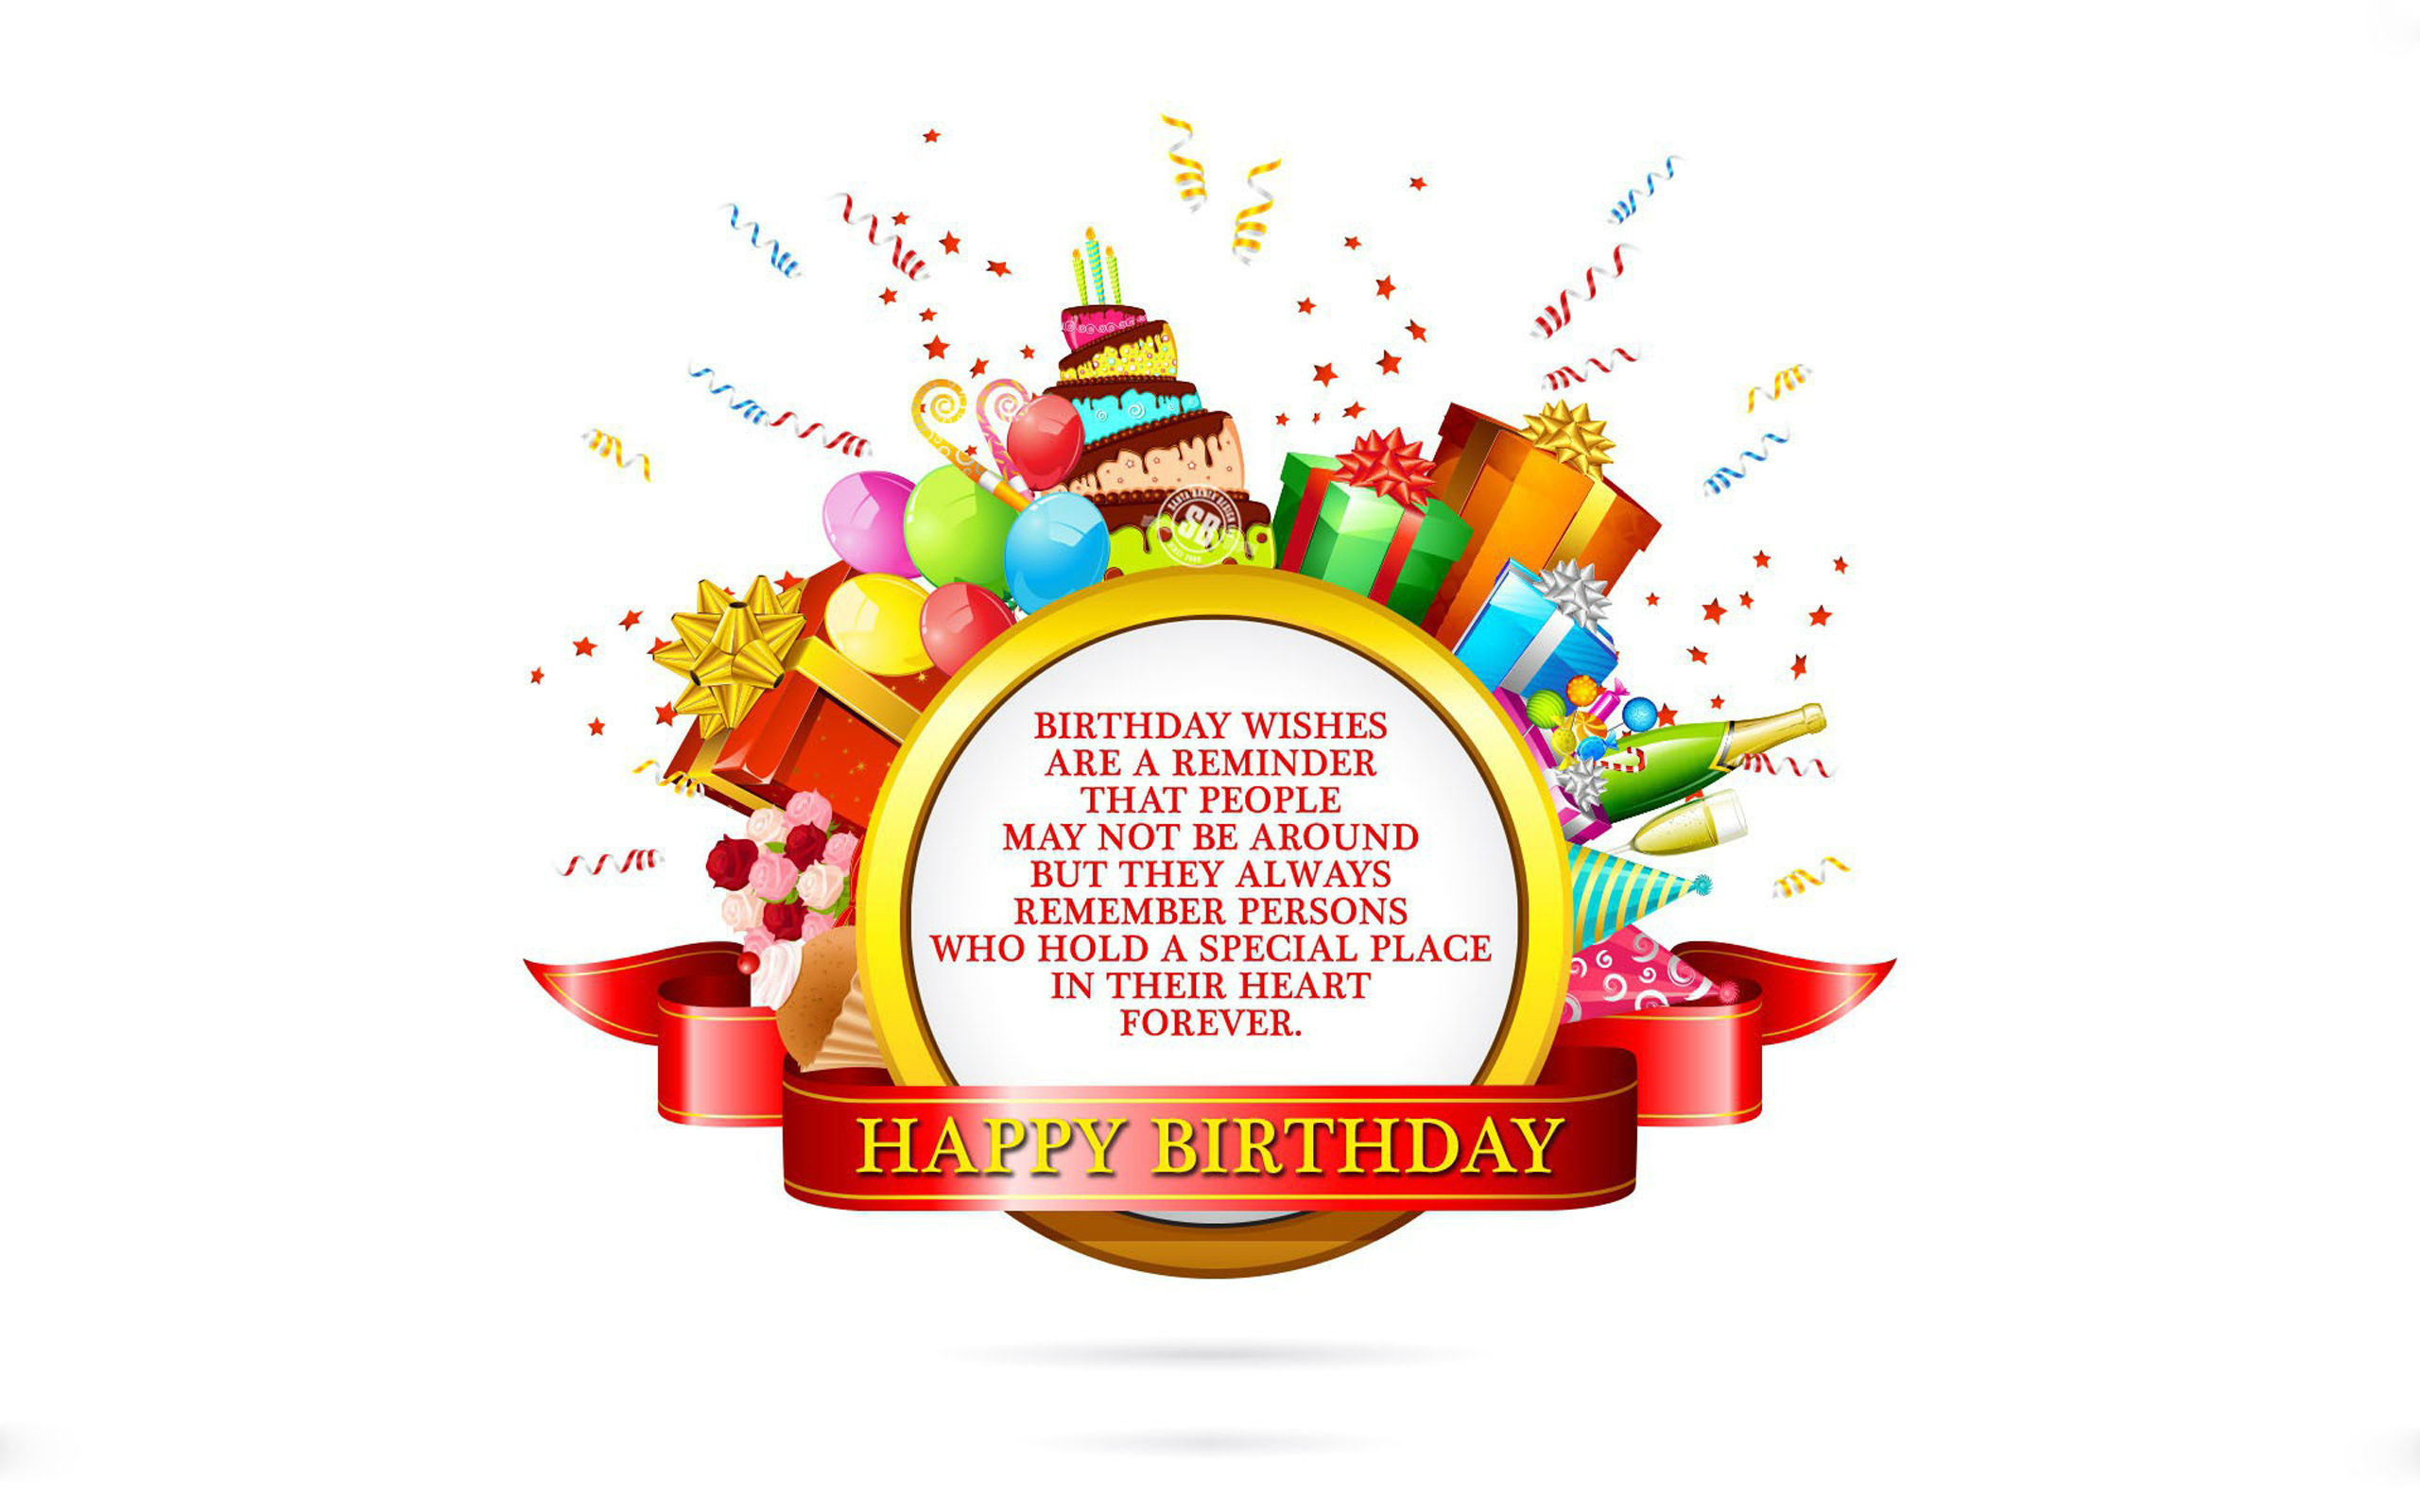 10 Best Happy Birthday Wishes With Images